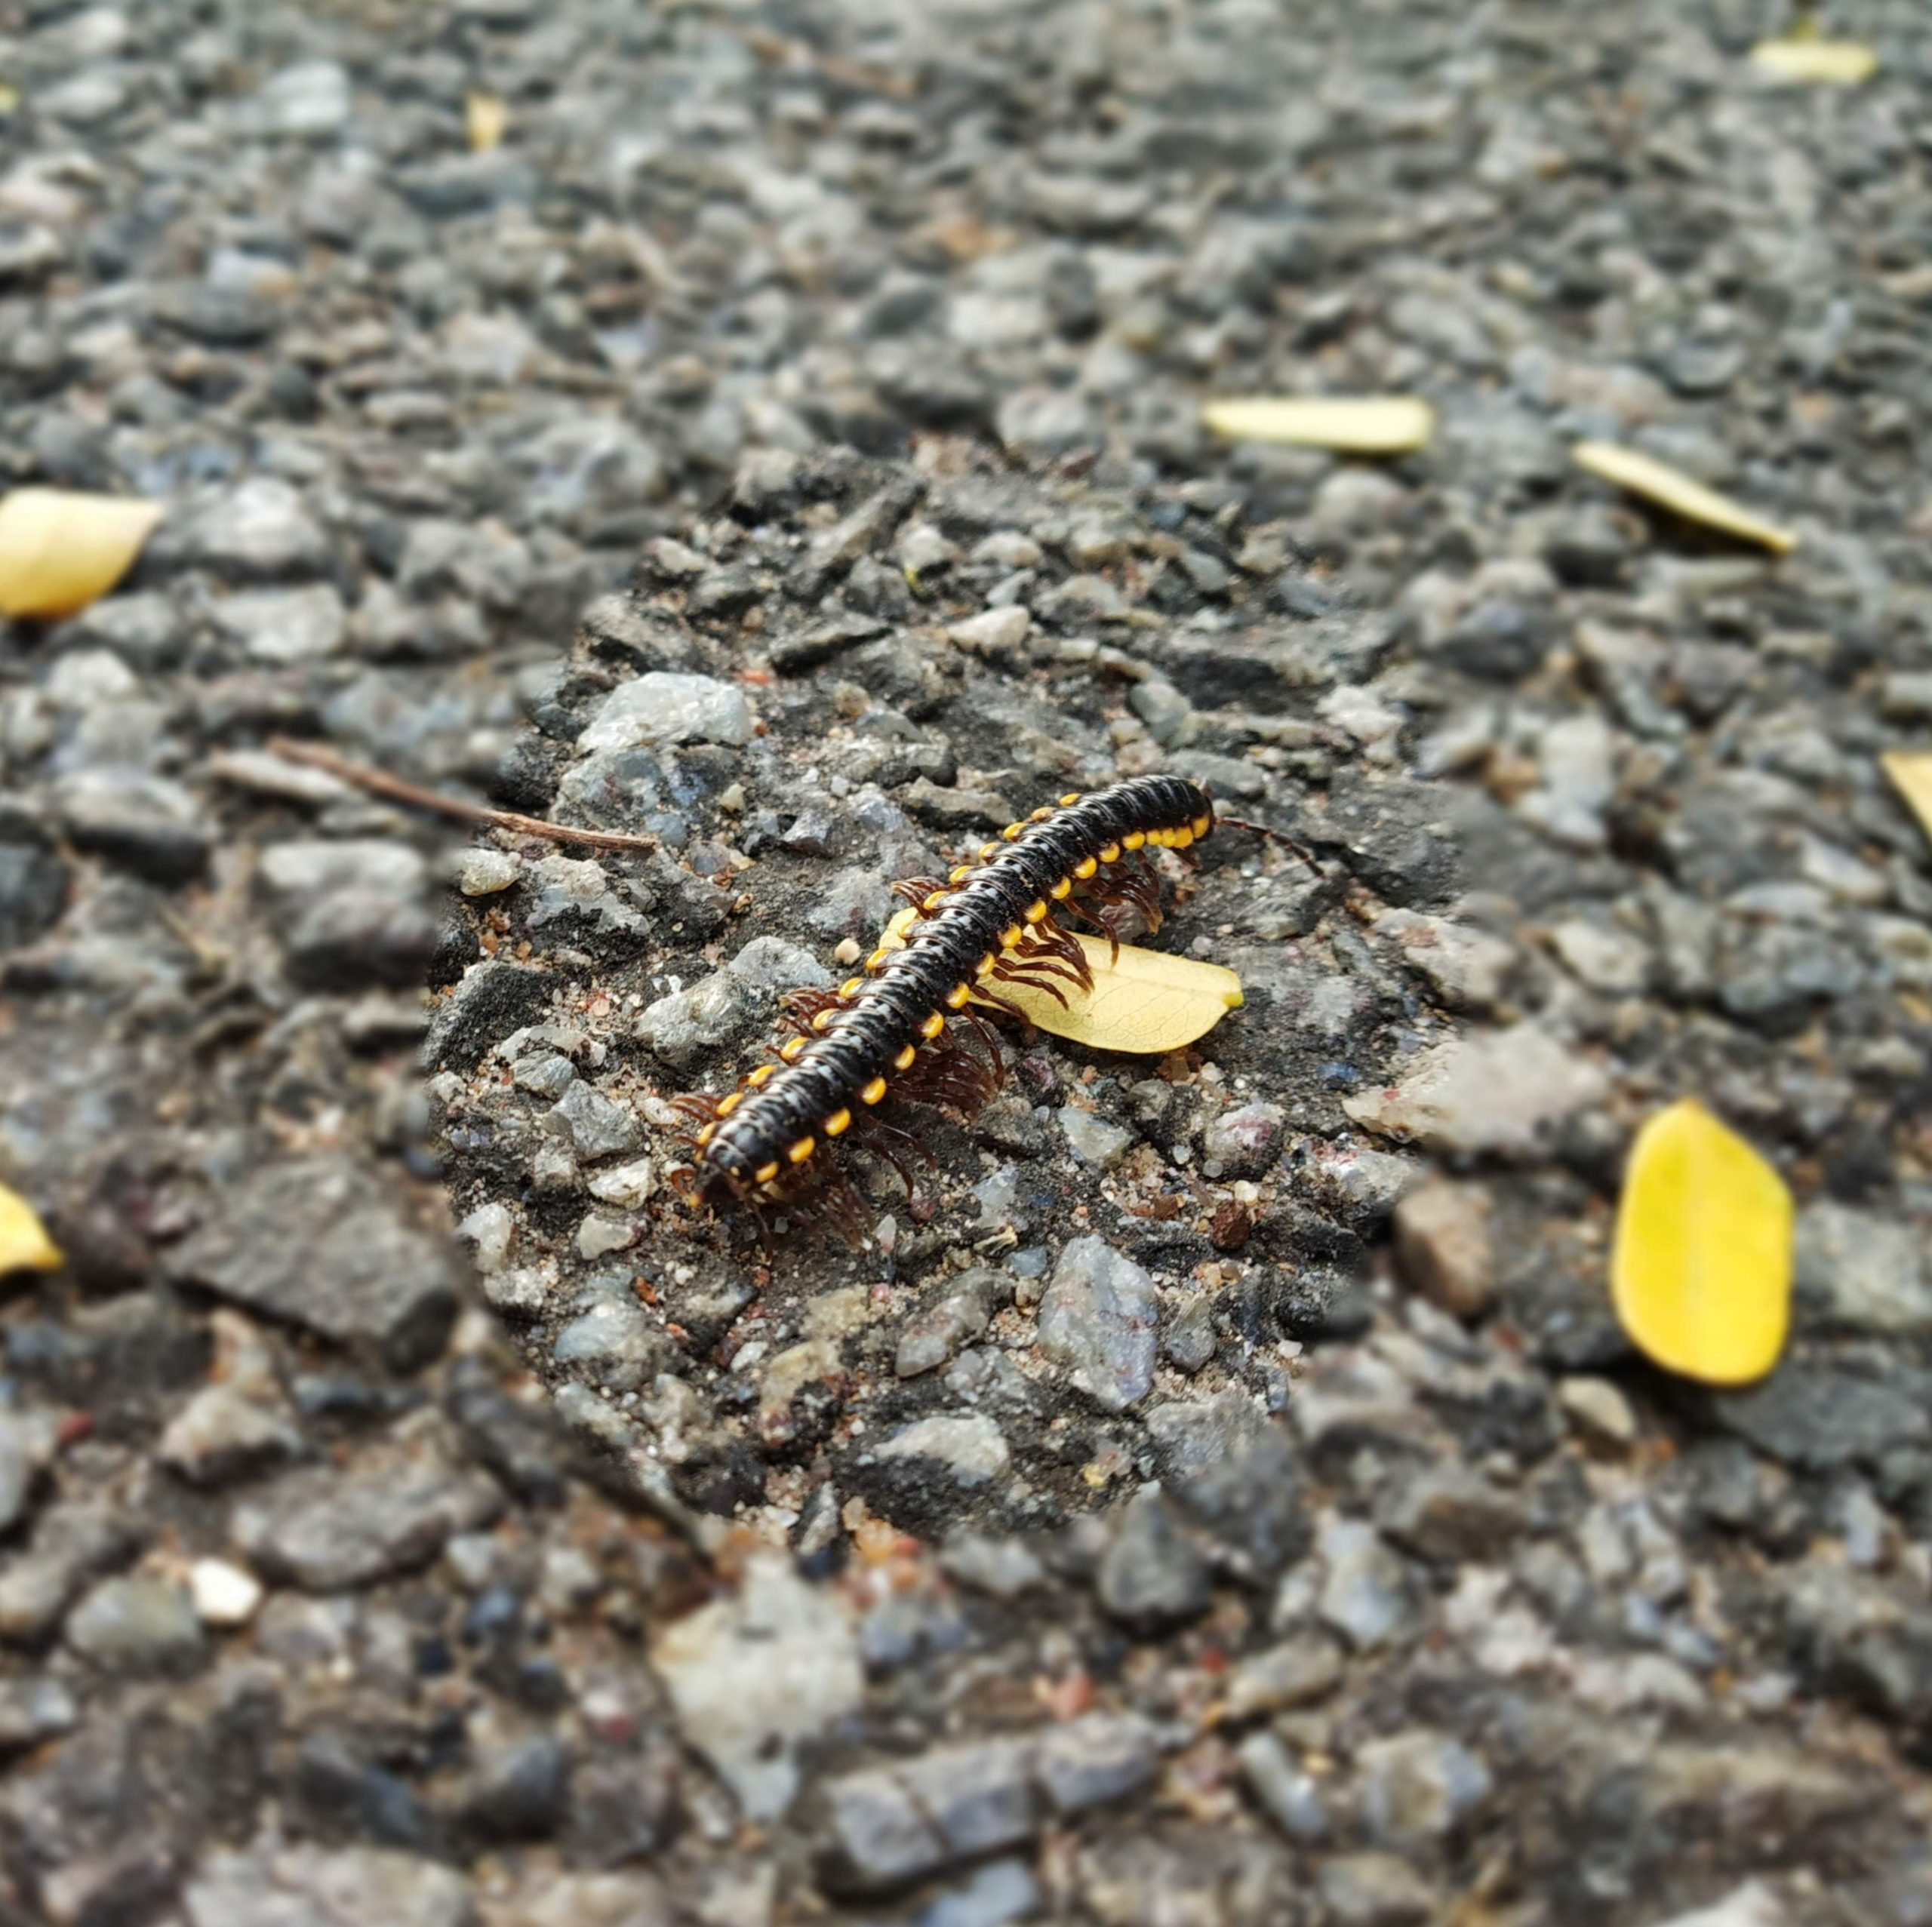 Centipede walking on the ground